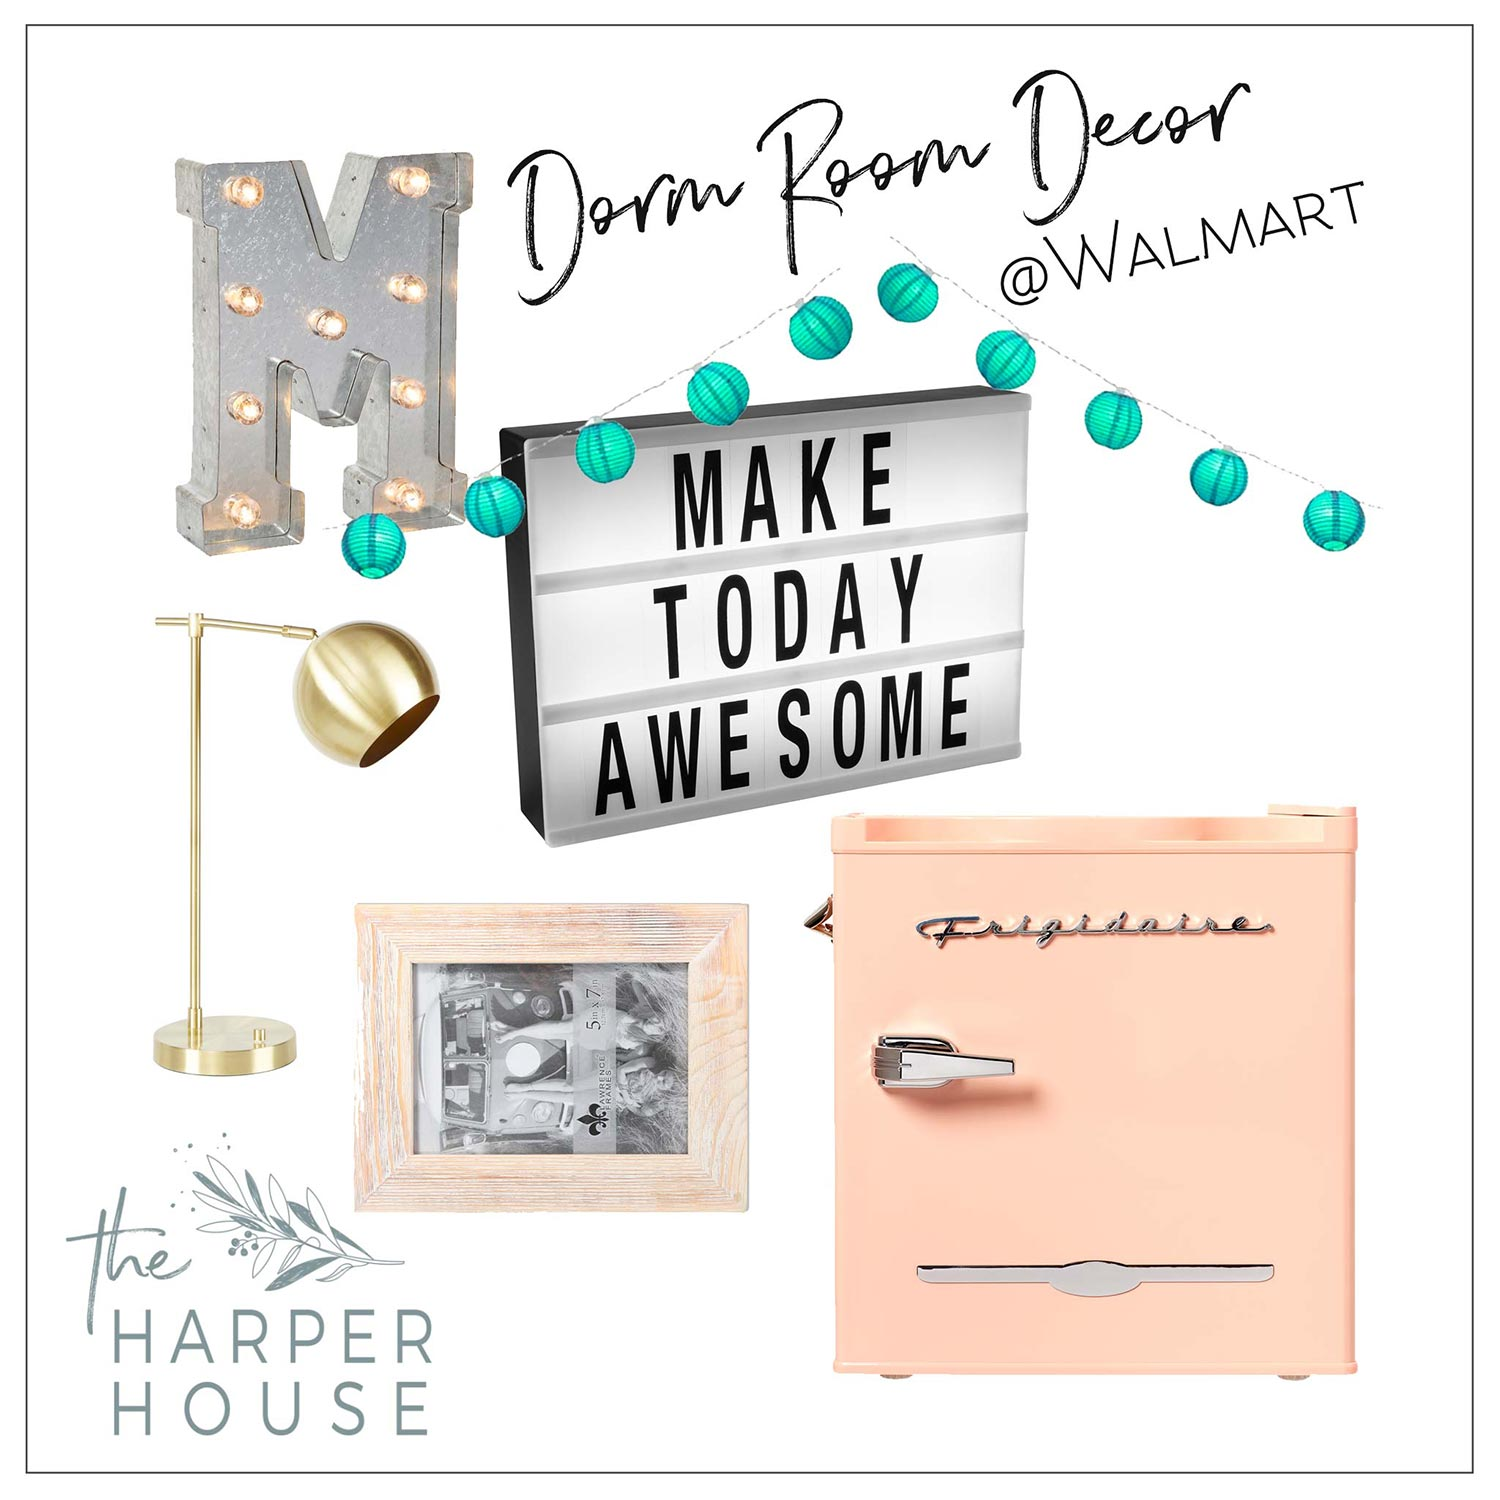 Add personality to your #dormroom with this dorm room decor from Walmart. Cute stylish and affordable dorm room accessories. #dorm #bohobedroom #boho